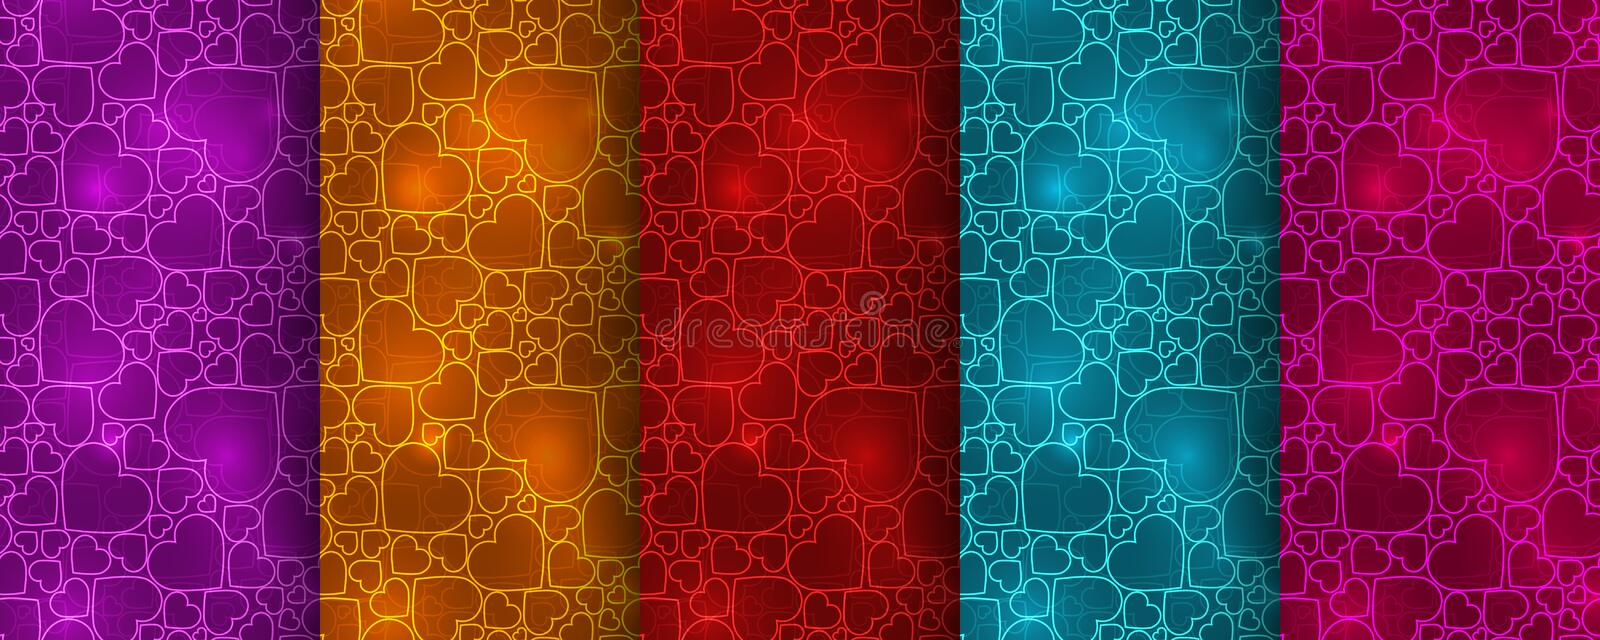 Set of five colorful seamless patterns with neon hearts royalty free illustration